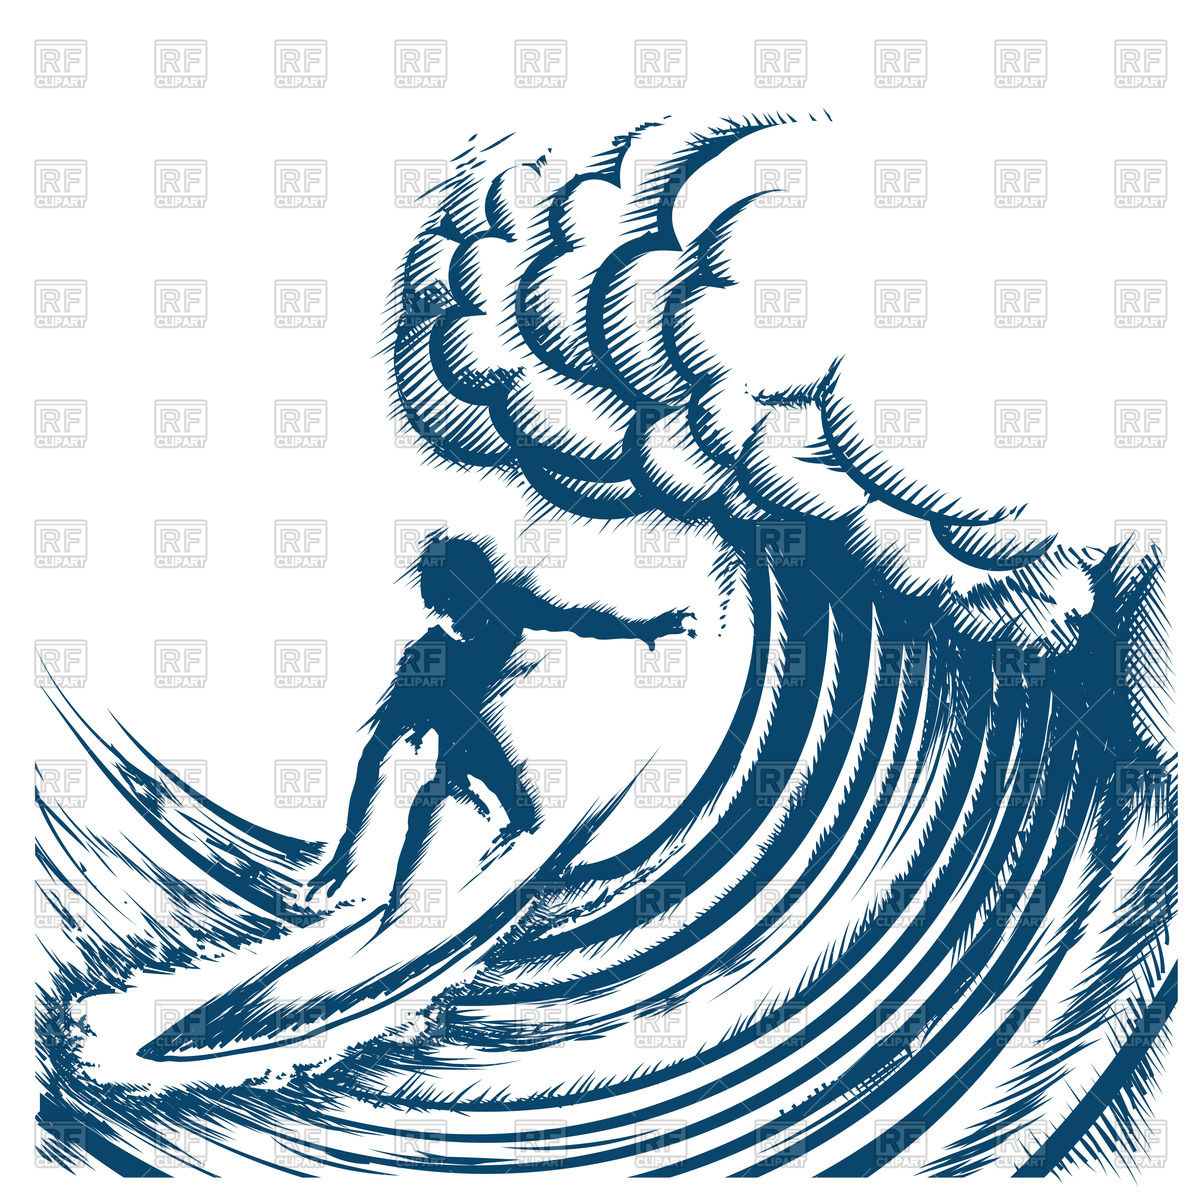 Surfer riding a big wave.